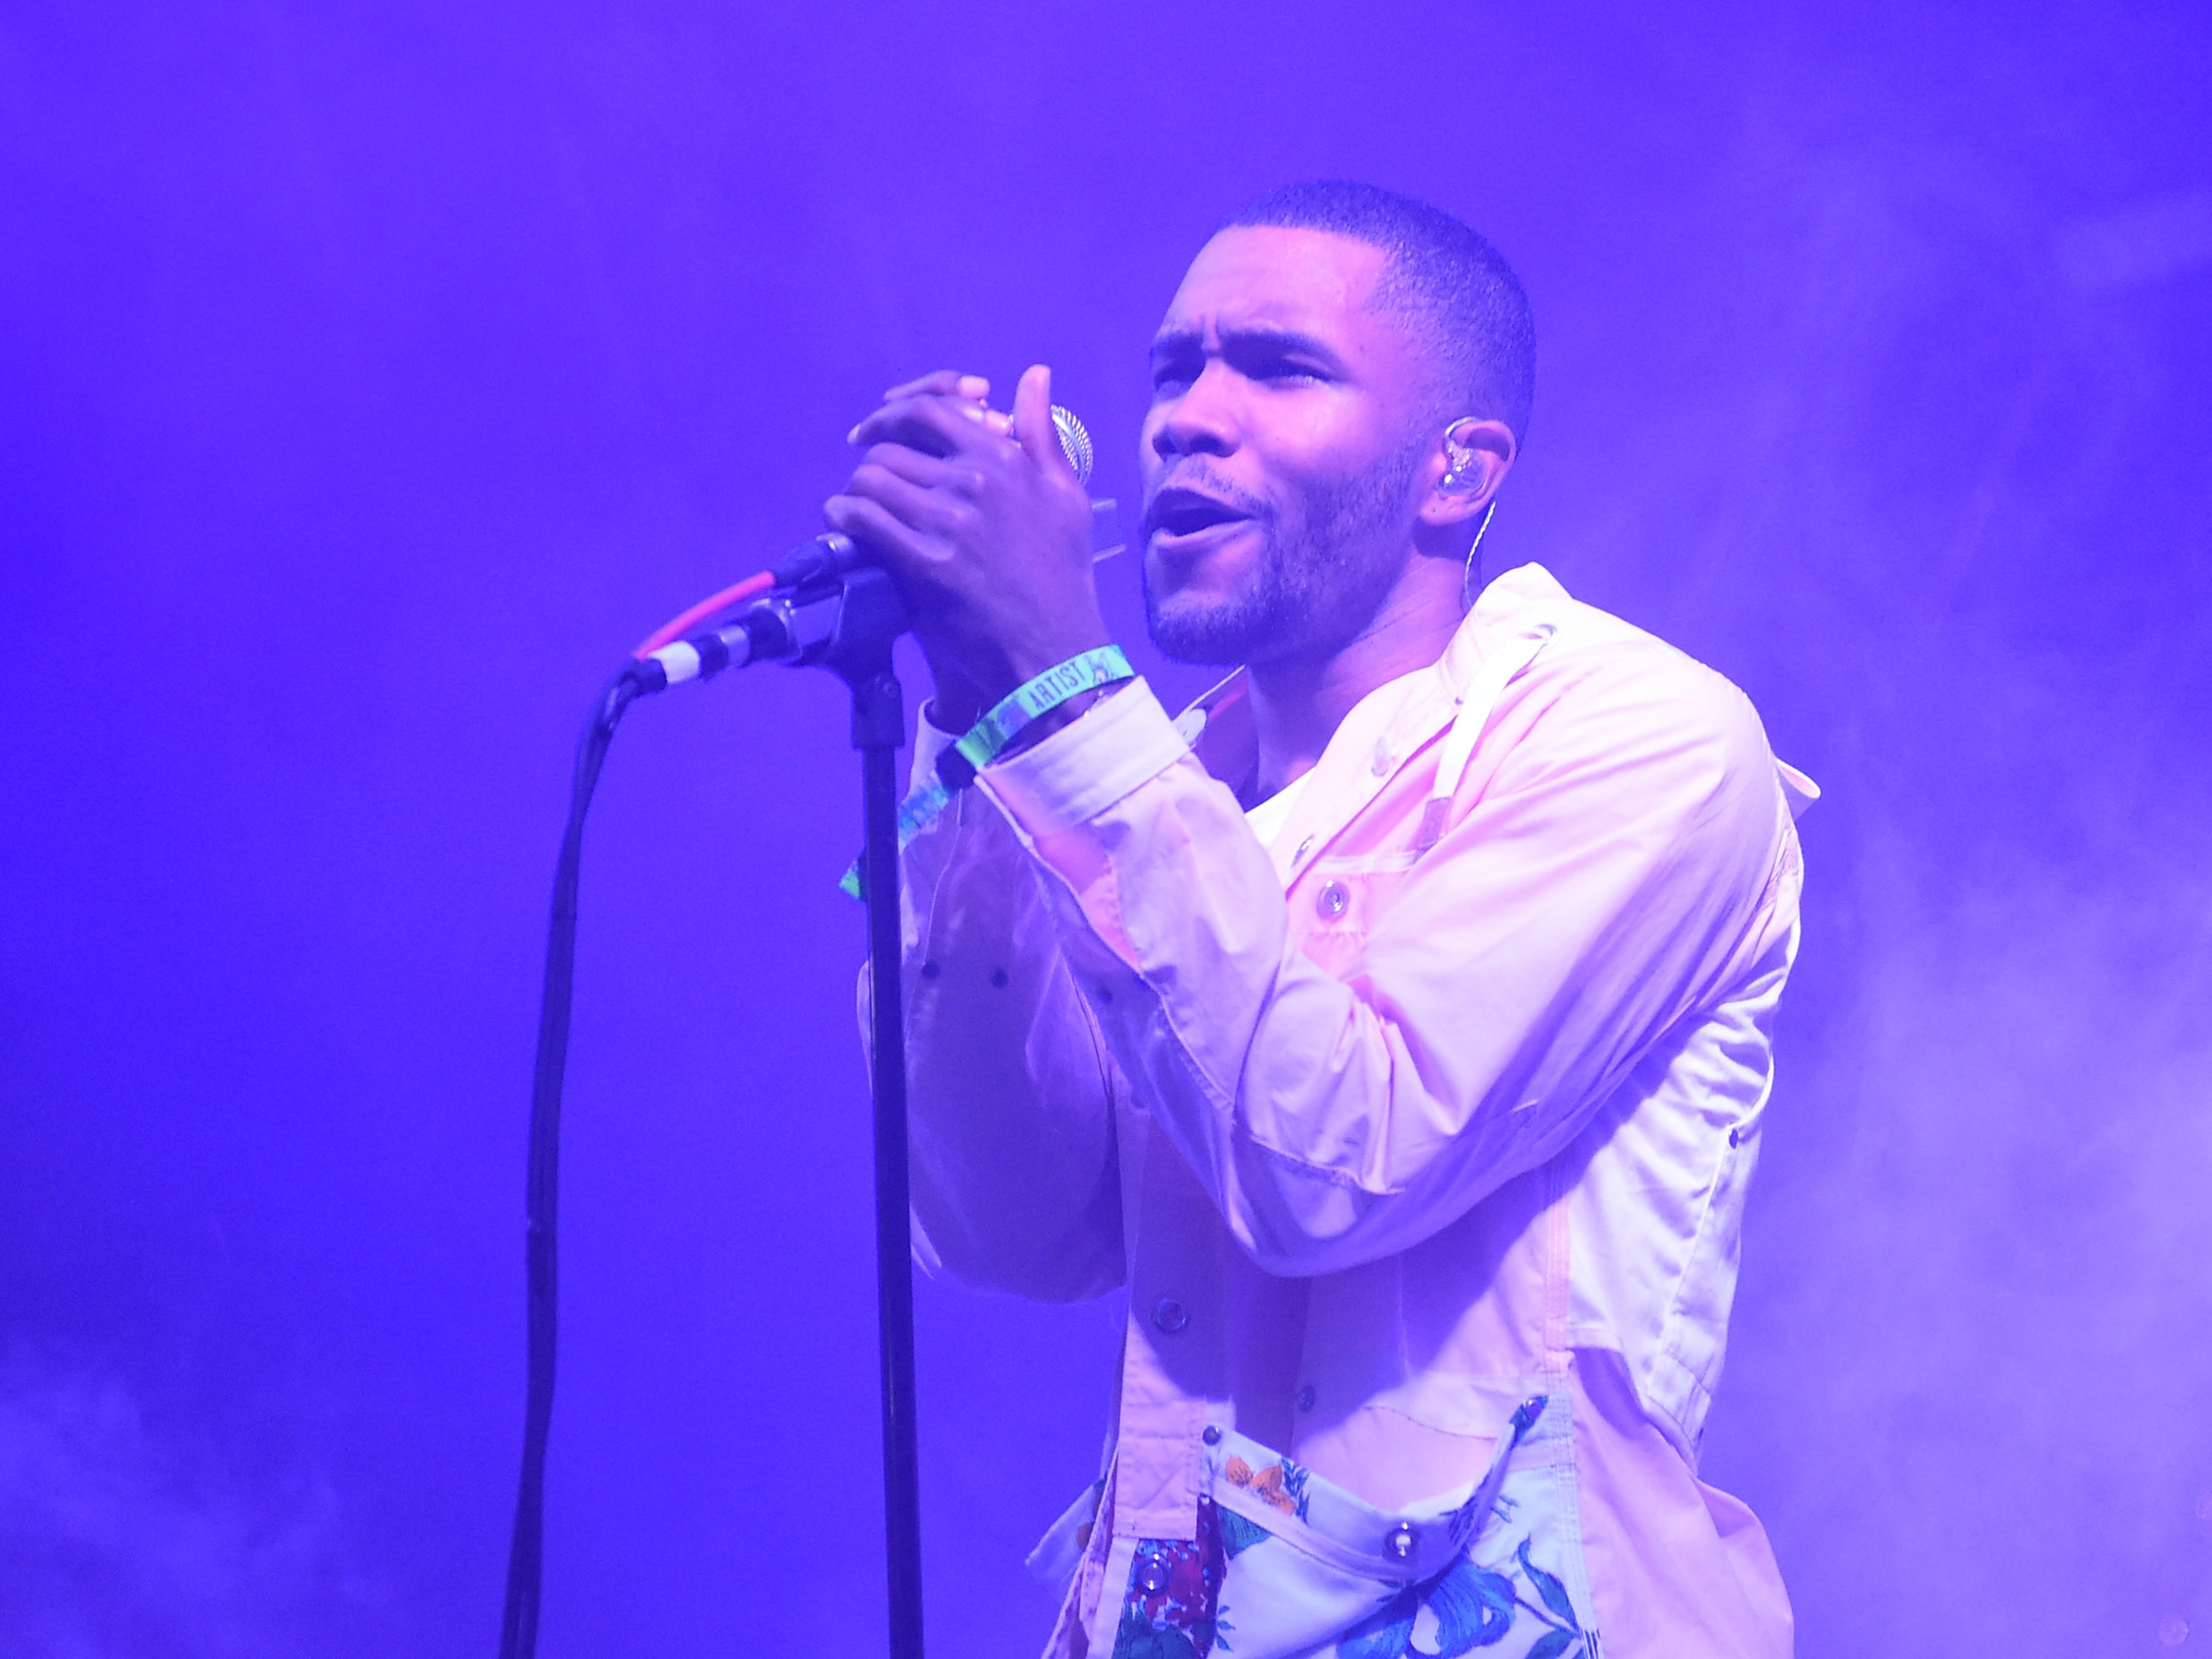 How to Listen to the New Frank Ocean Album 'Boys Don't Cry'